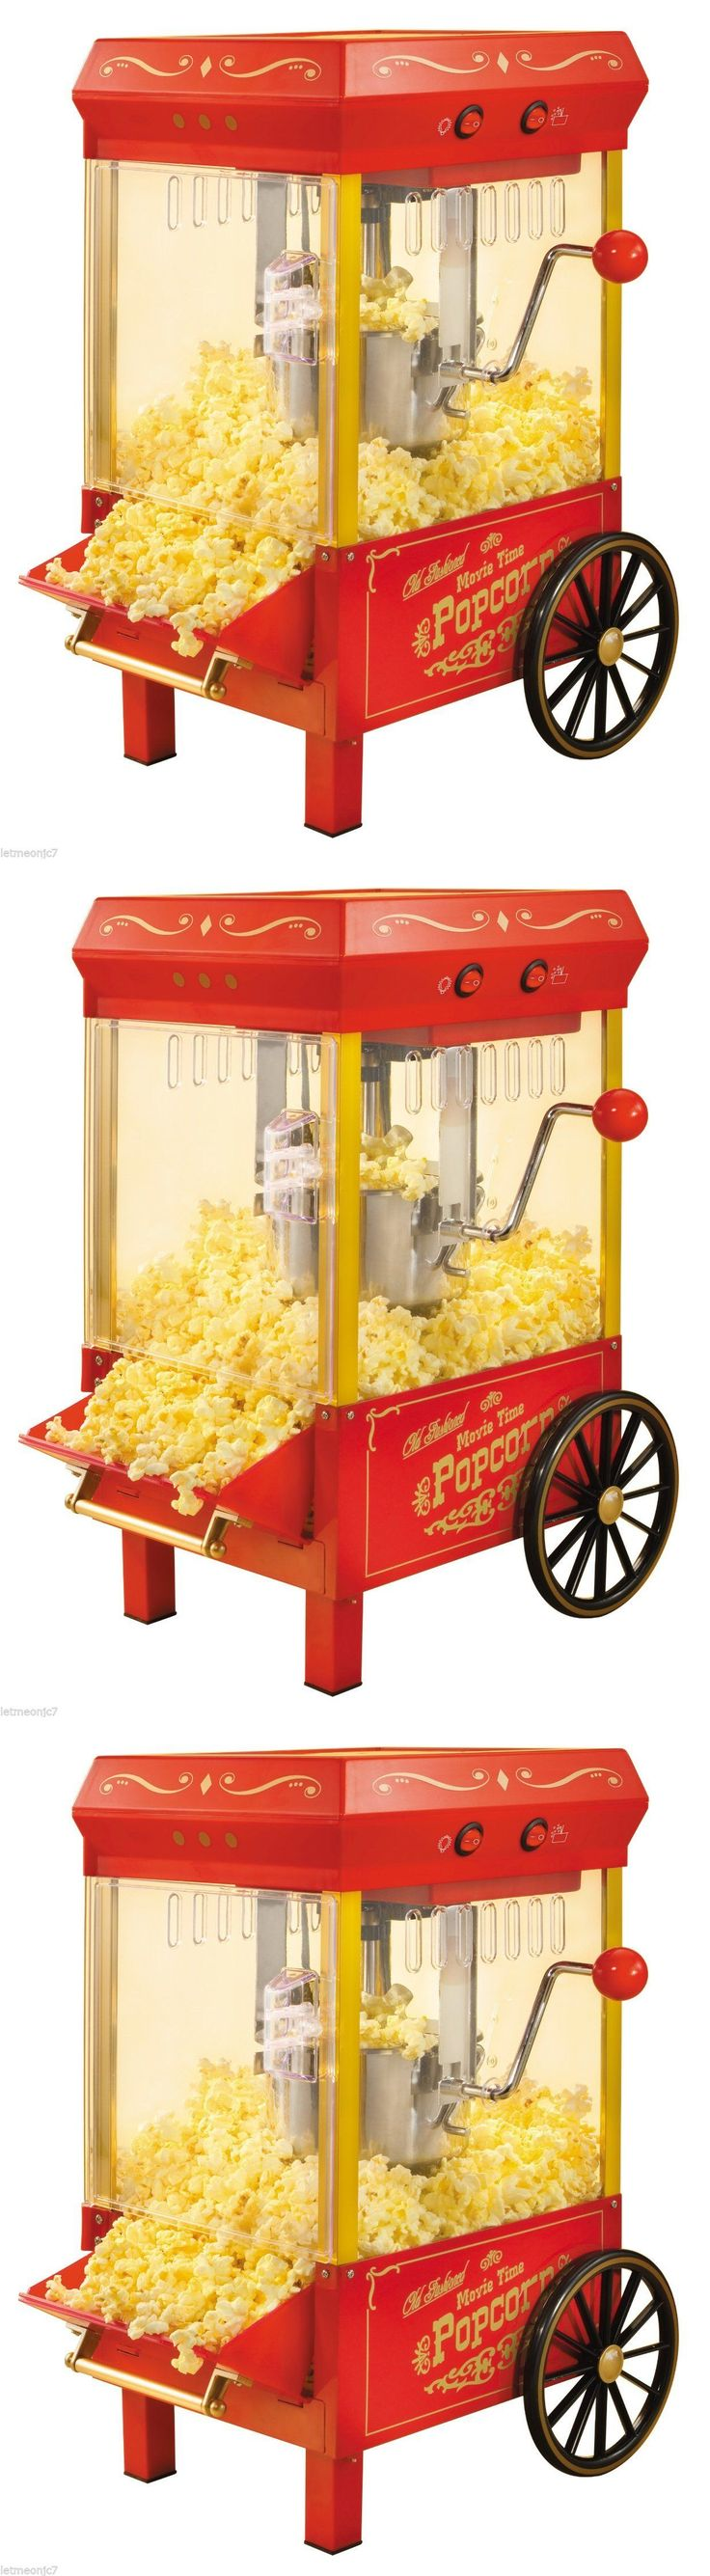 Popcorn Poppers 66752: Vintage Kettle Popcorn Maker Machine Cart Stand Commercial Or Home Movie Theater -> BUY IT NOW ONLY: $69.5 on eBay!